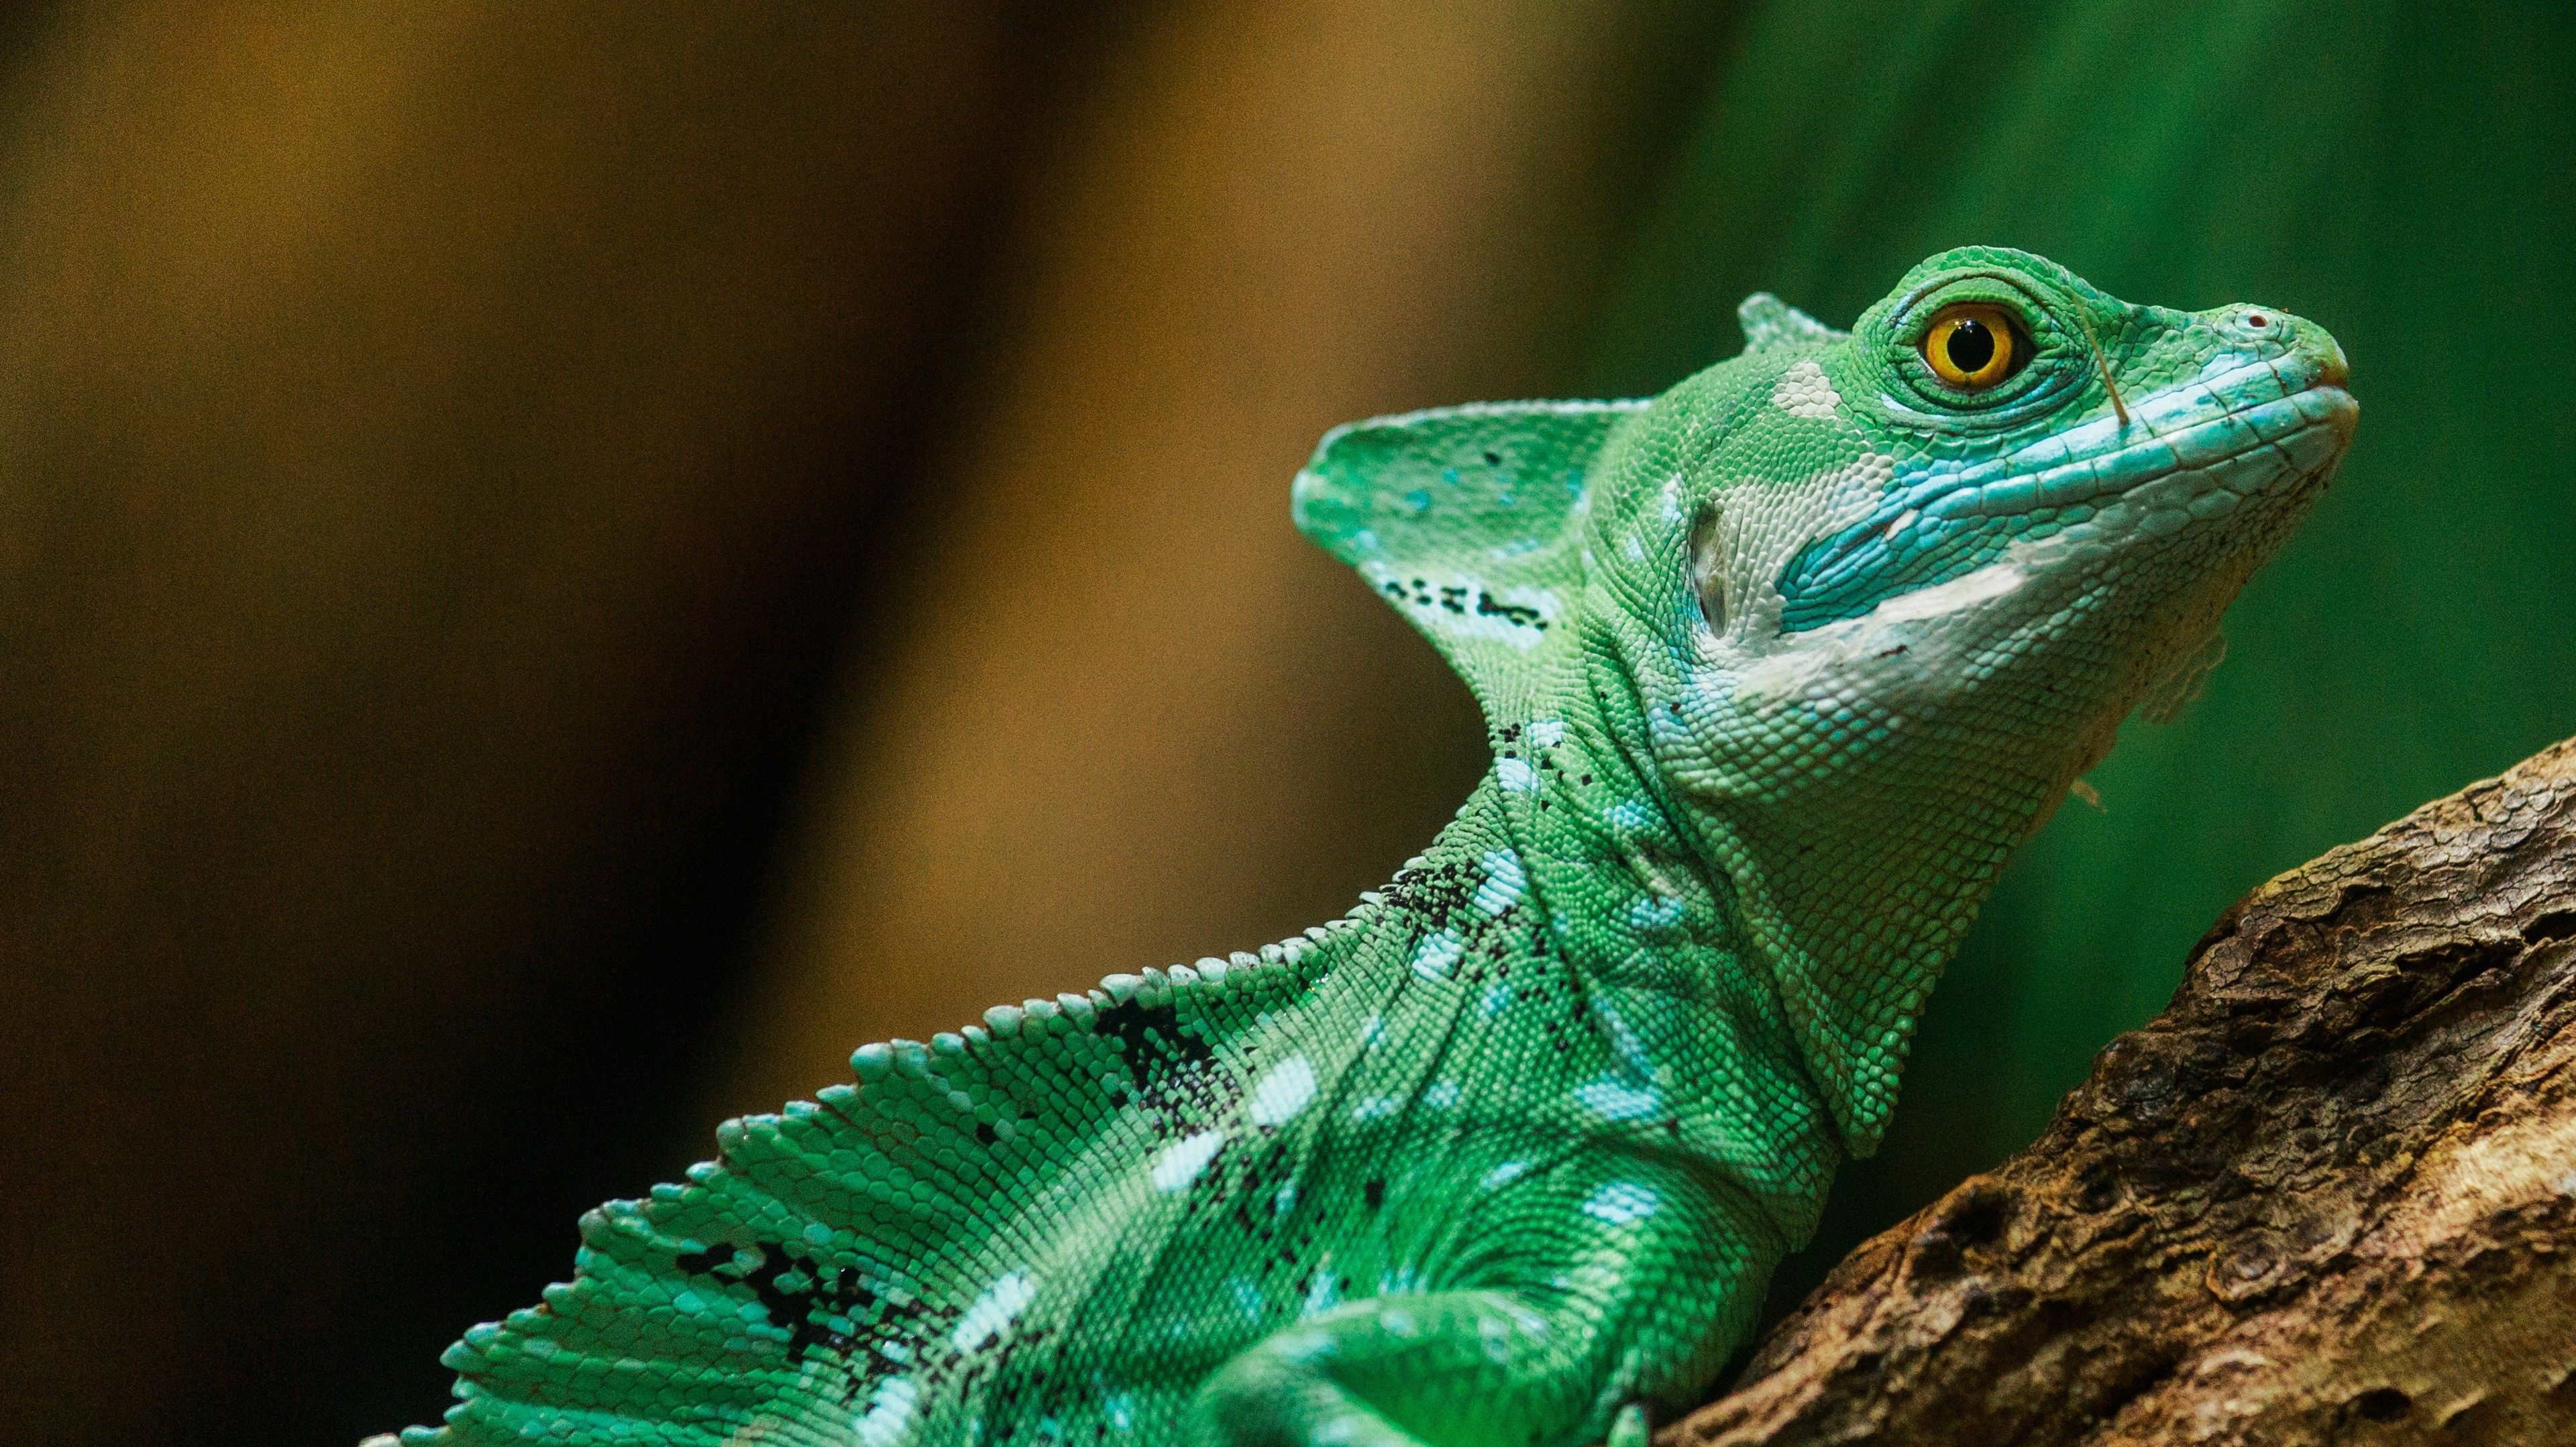 Green Reptile 4K Fondo de pantalla | HD Wallpapers